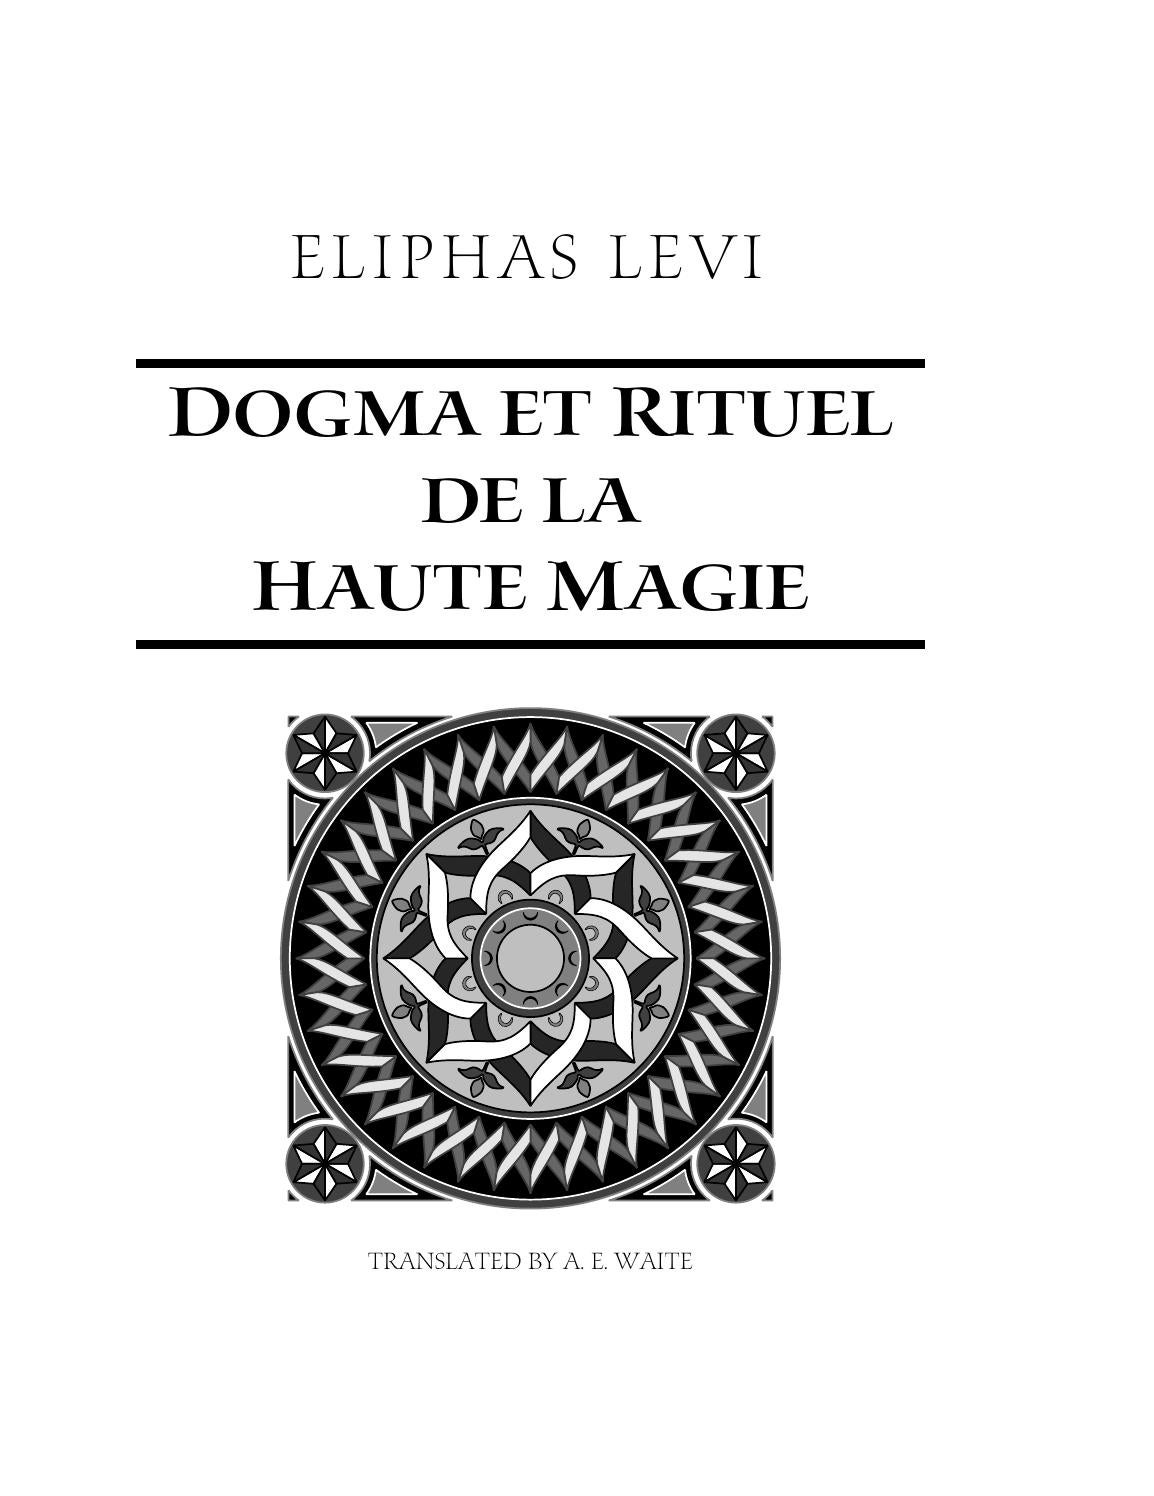 Eliphas levi the doctrine of transcendental magic cd2 id1693947022 size1094